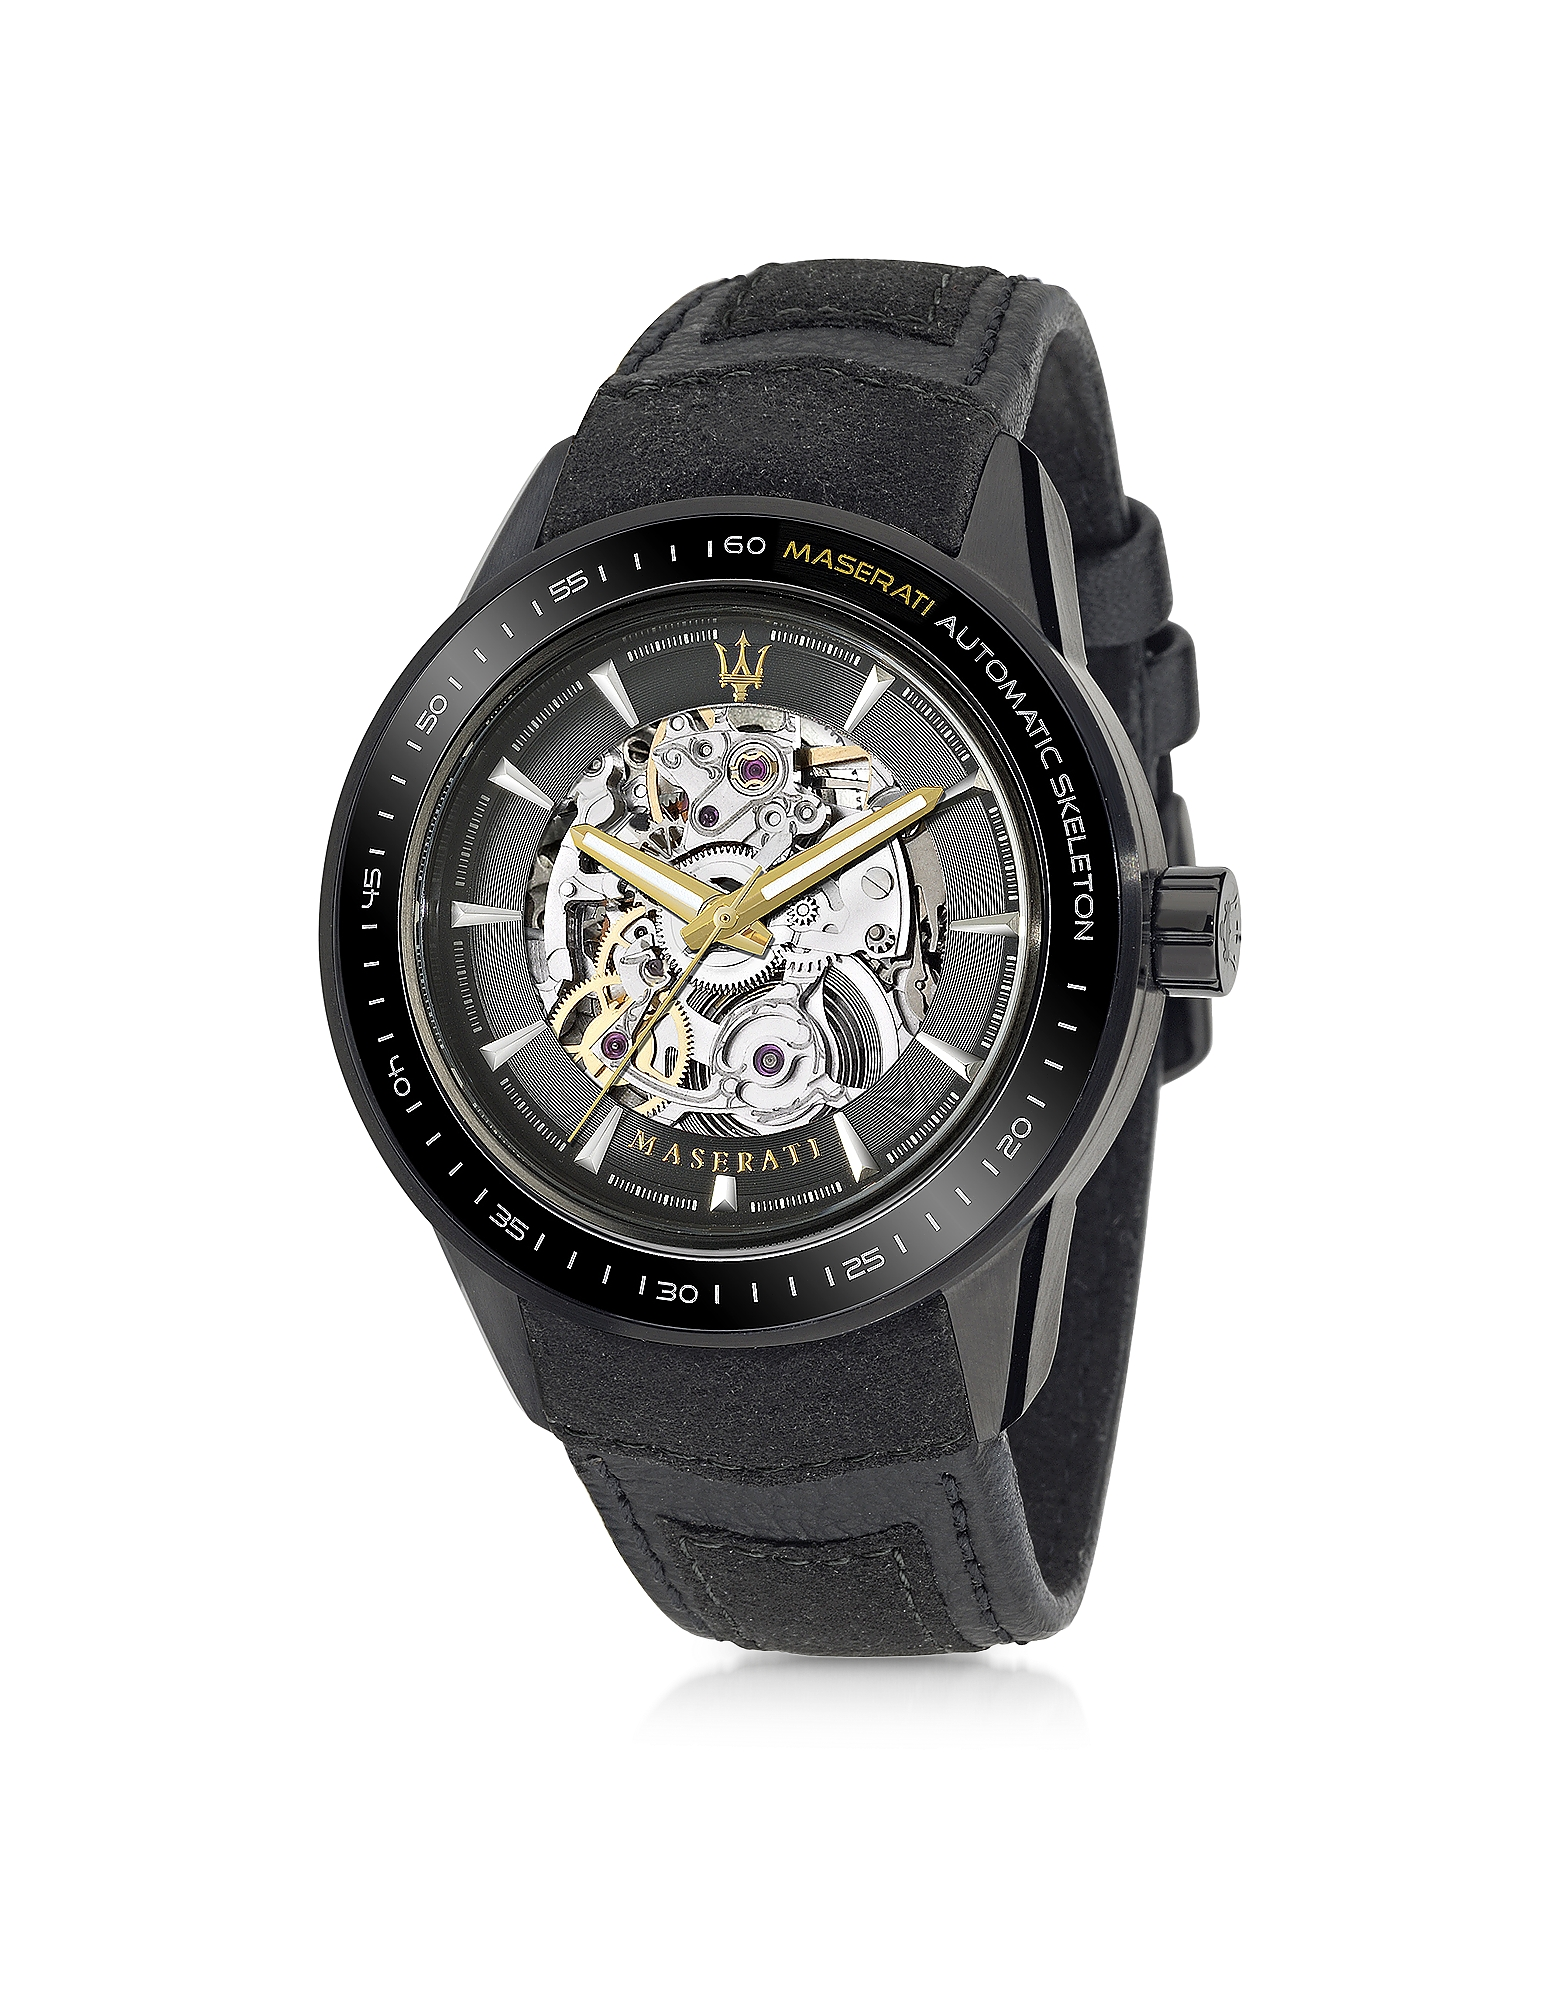 Maserati Men's Watches, Corsa Black Stainless Steel Automatic Skeleton Men's Watch